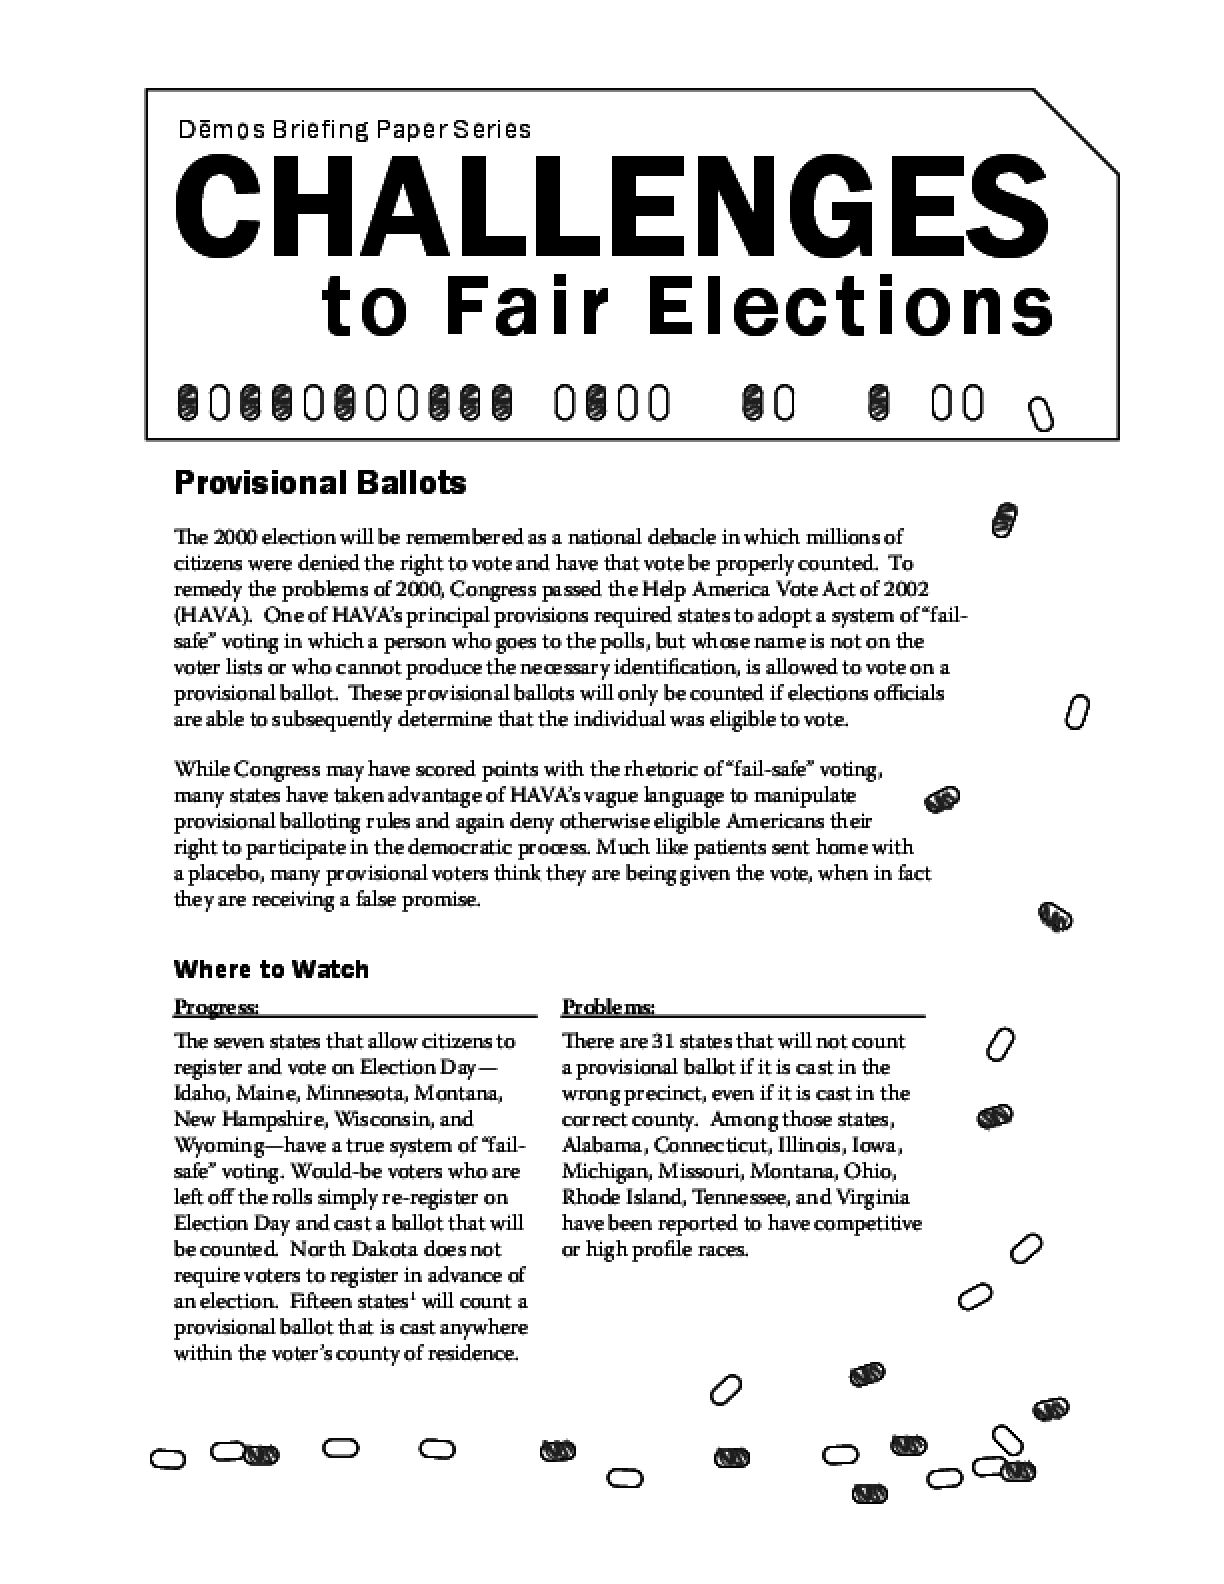 Challenges to Fair Elections 2: Provisional Ballots